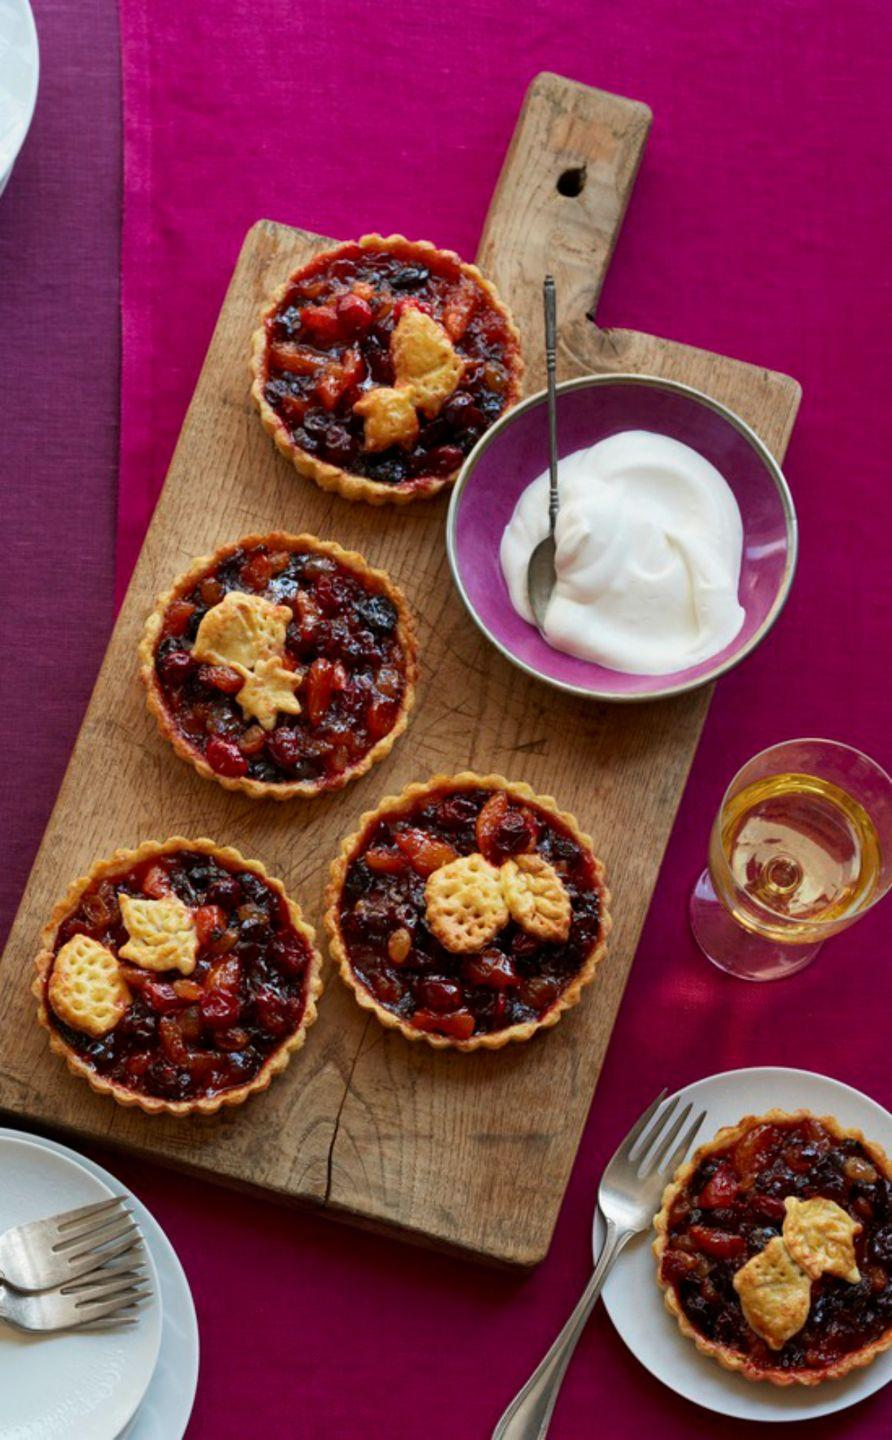 "<p>Cheddar cheese gives these adorable holiday tarts an unexpected burst of savory flavor.</p><p><strong><em><a href=""https://www.womansday.com/food-recipes/food-drinks/recipes/a12187/mini-mince-tarts-cheddar-crusts-recipe-wdy1113/"" rel=""nofollow noopener"" target=""_blank"" data-ylk=""slk:Get the Mini Mince Tarts with Cheddar Crusts recipe."" class=""link rapid-noclick-resp"">Get the Mini Mince Tarts with Cheddar Crusts recipe. </a></em></strong></p>"